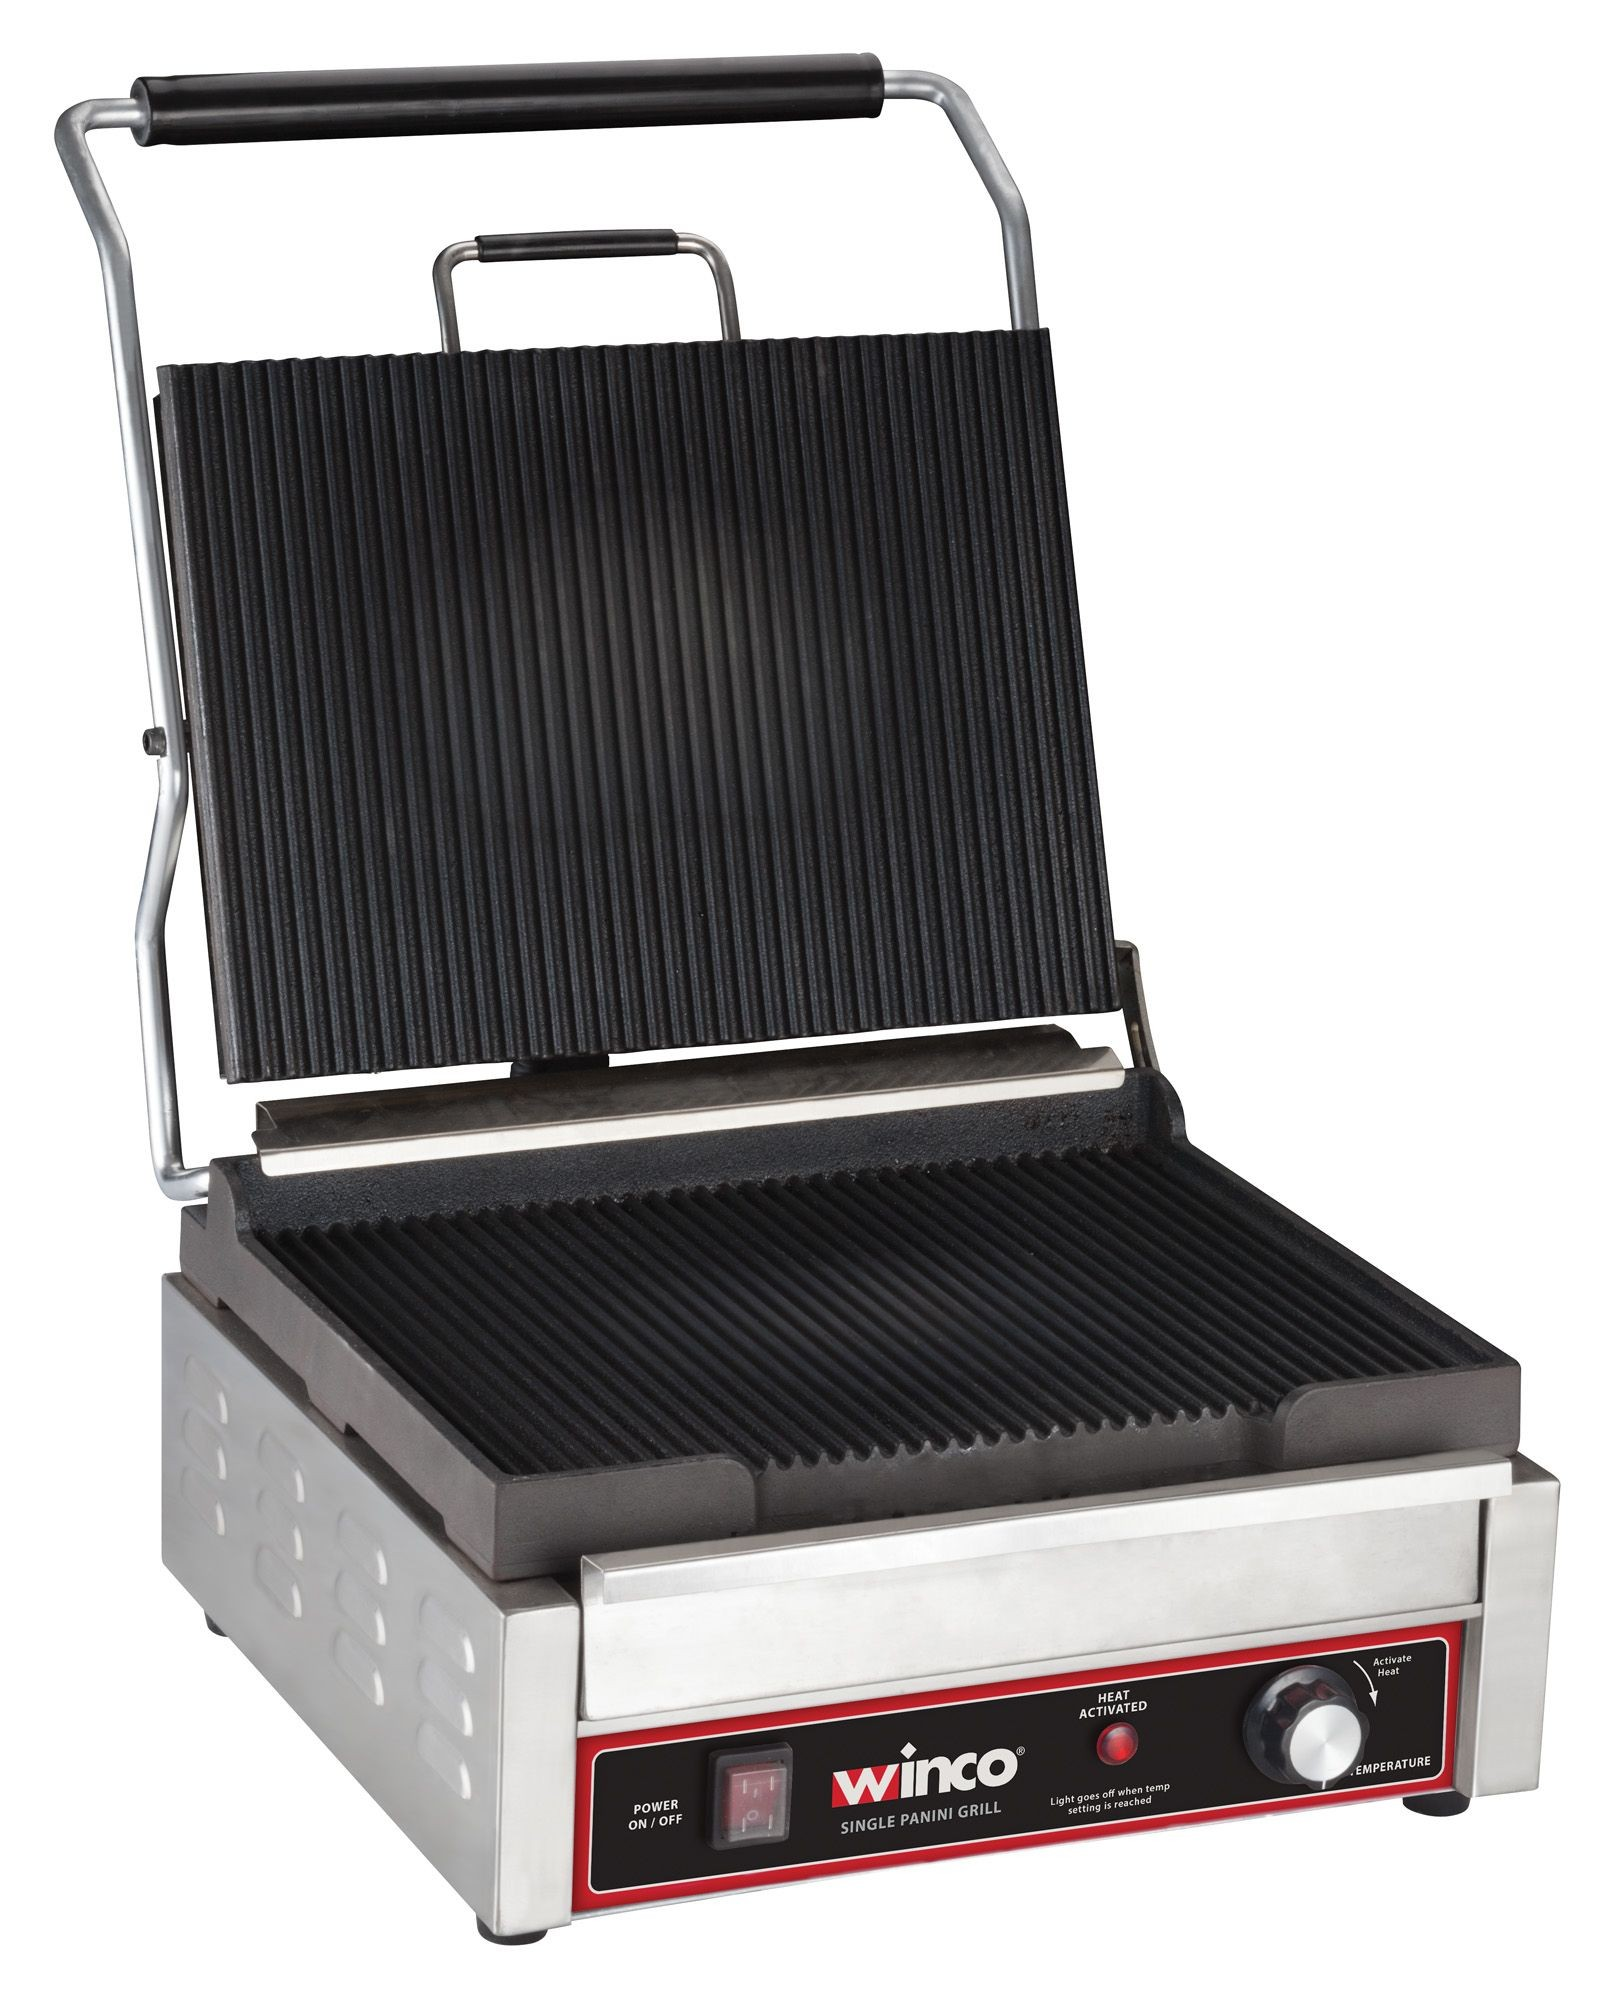 Winco EPG-1C Countertop Electric Single Panini Press 120V